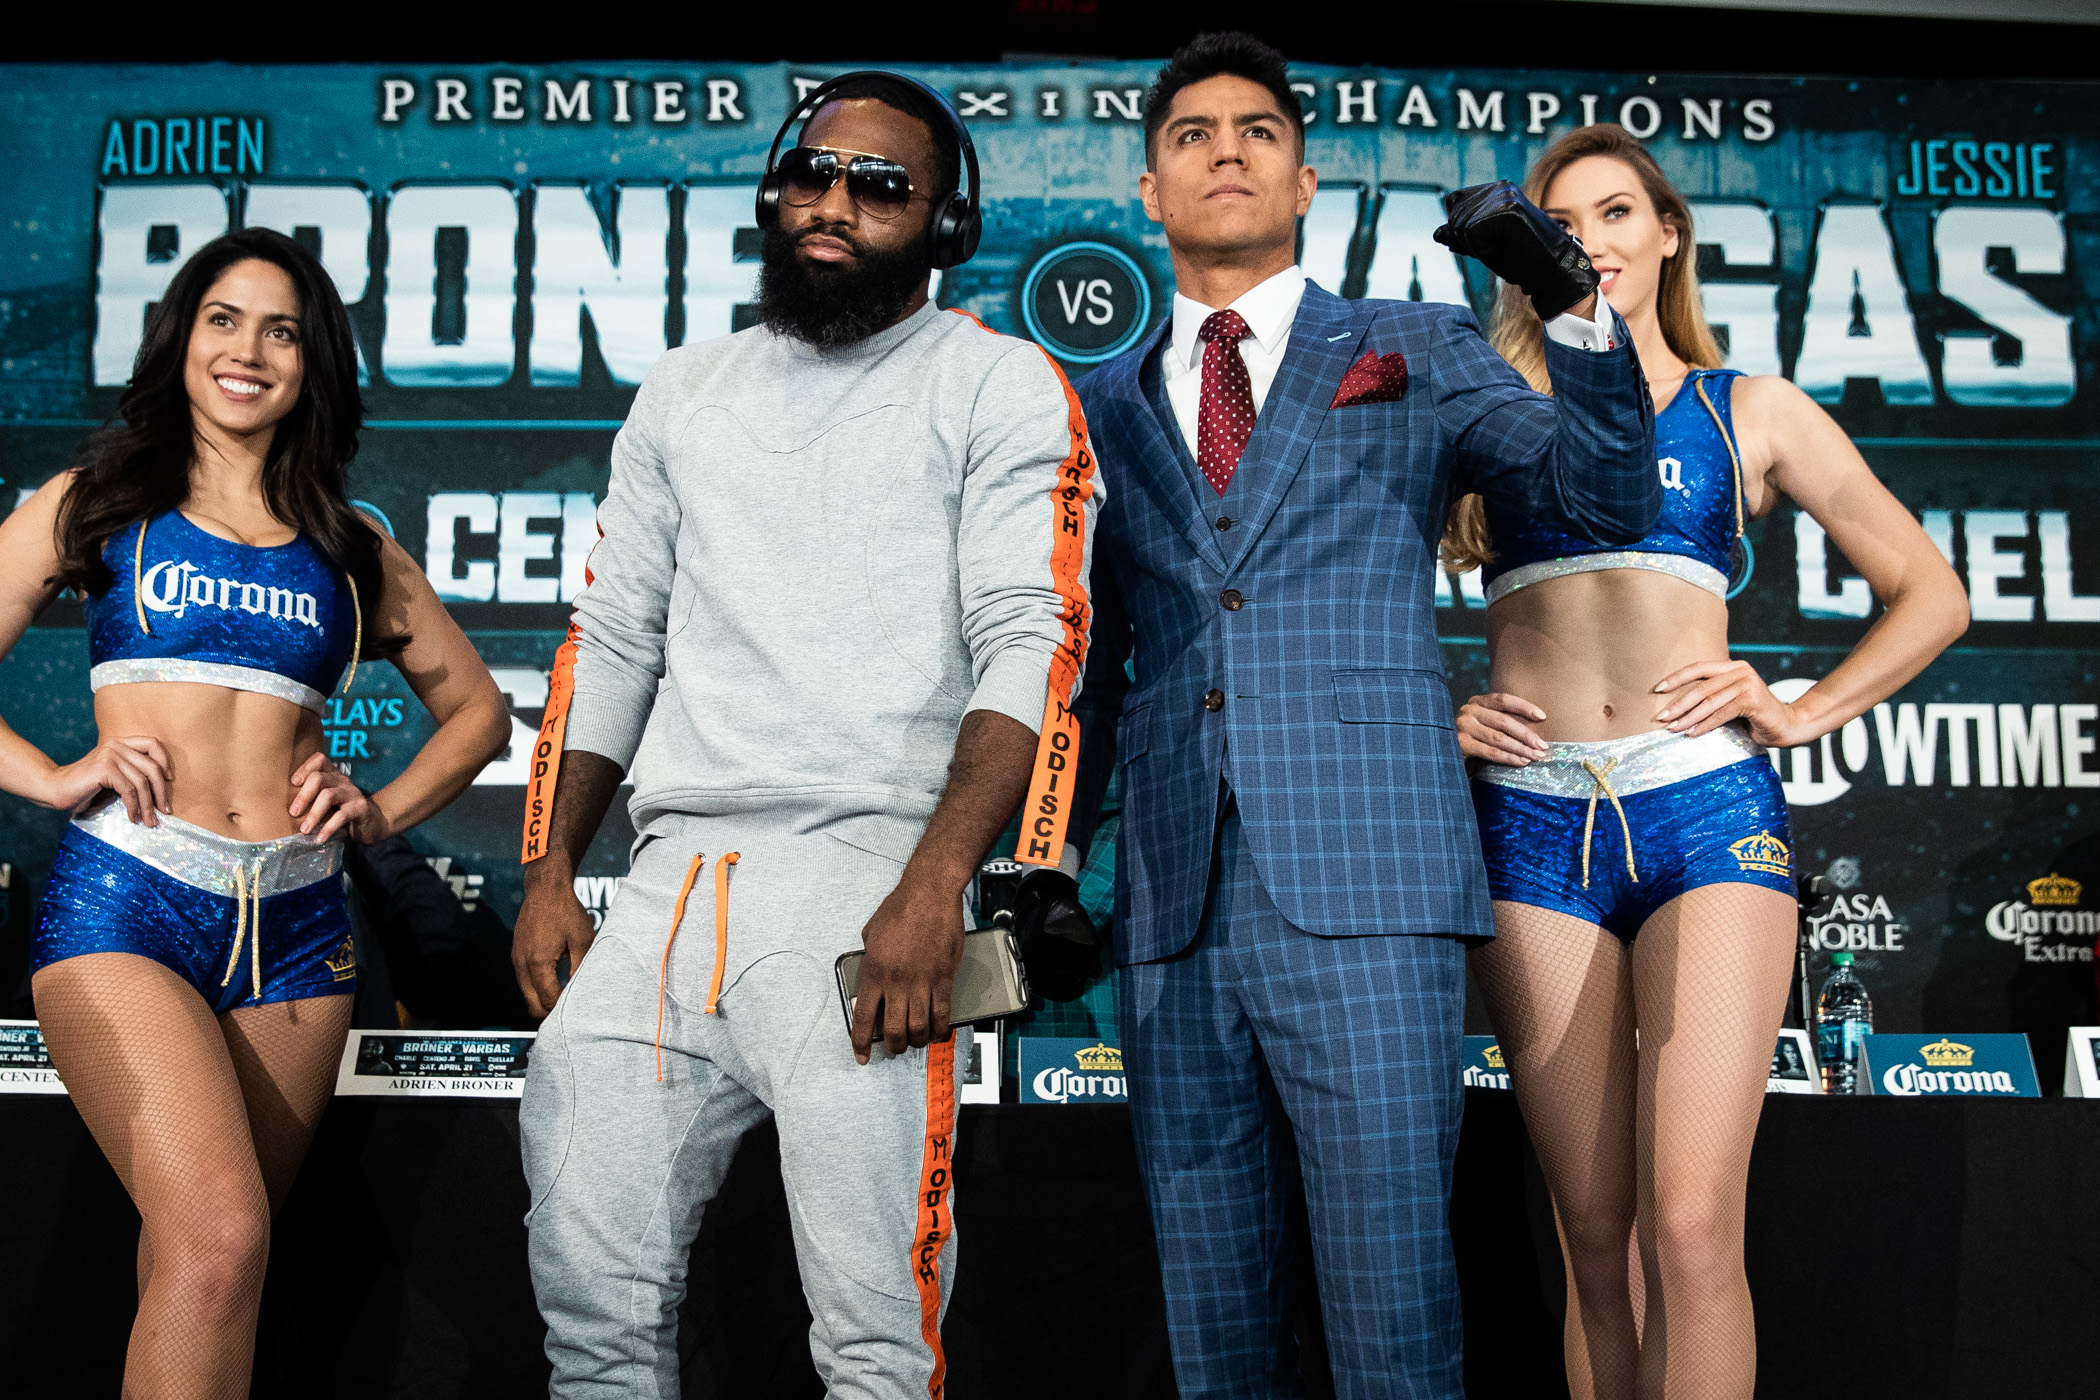 Adrien Broner and Jessie Vargas Battle To A Draw - Broner Blasts Decision